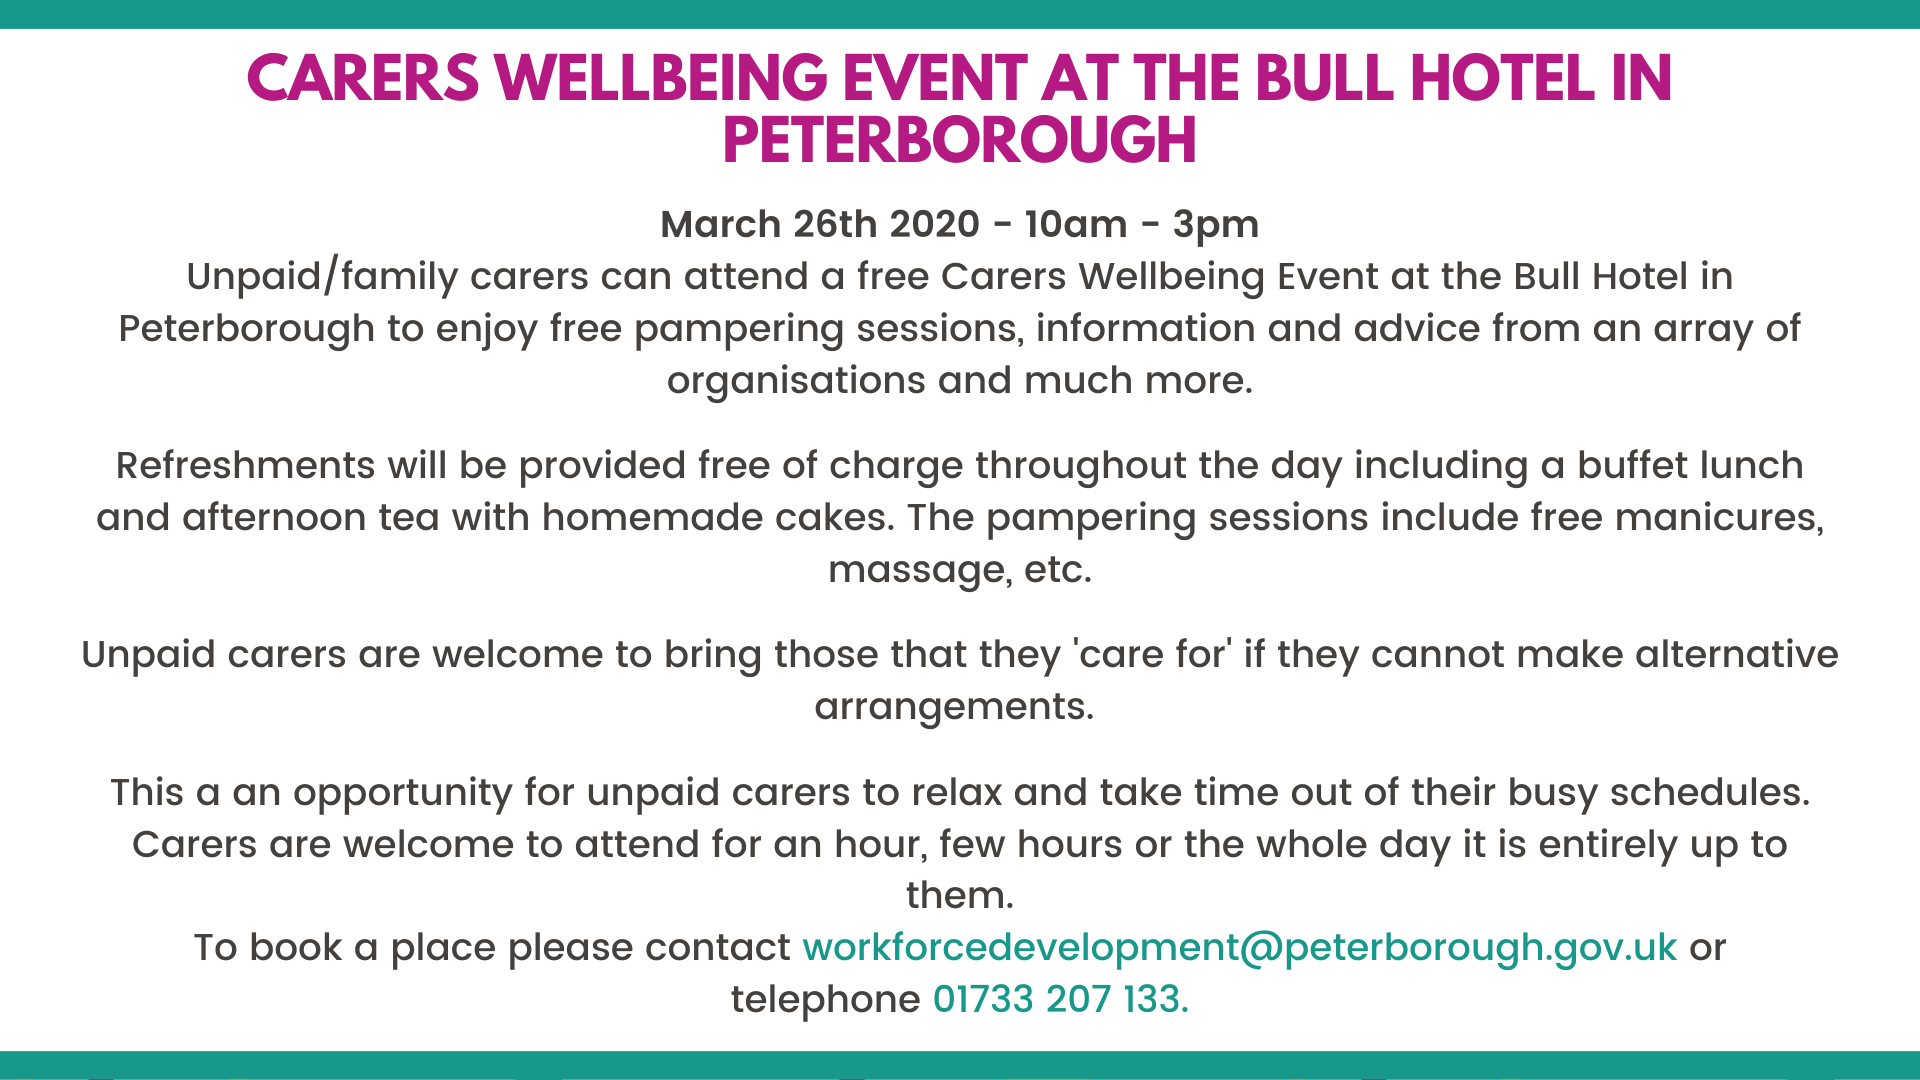 Carers Wellbeing Event